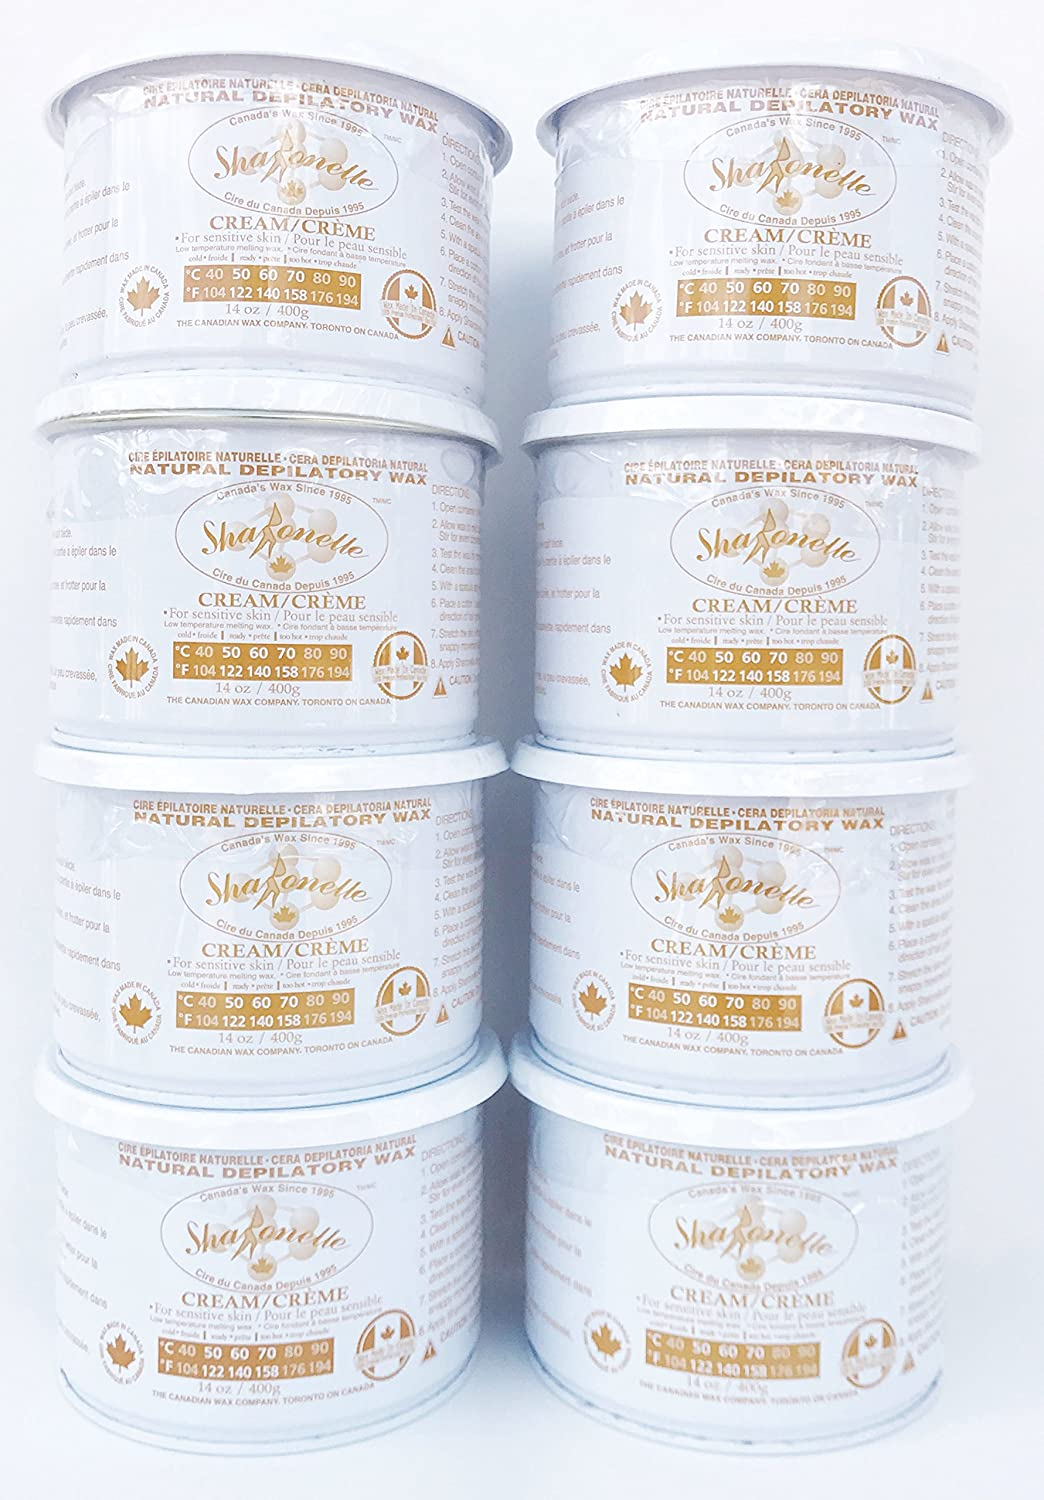 Amazon.com: Sharonelle Natural Cream Soft Wax For Sensitive Skin in 14 oz. - 8 cans: Health & Personal Care